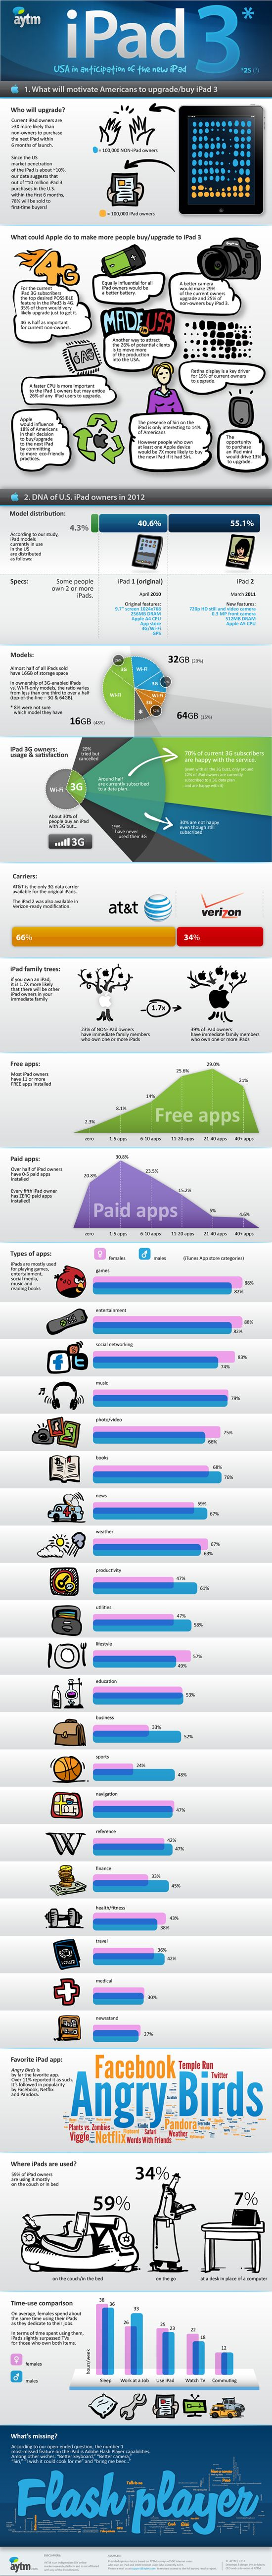 Women spend as much time on their iPad as they do at work. Most users have purchased less than 5 apps. 20% have purchased none...